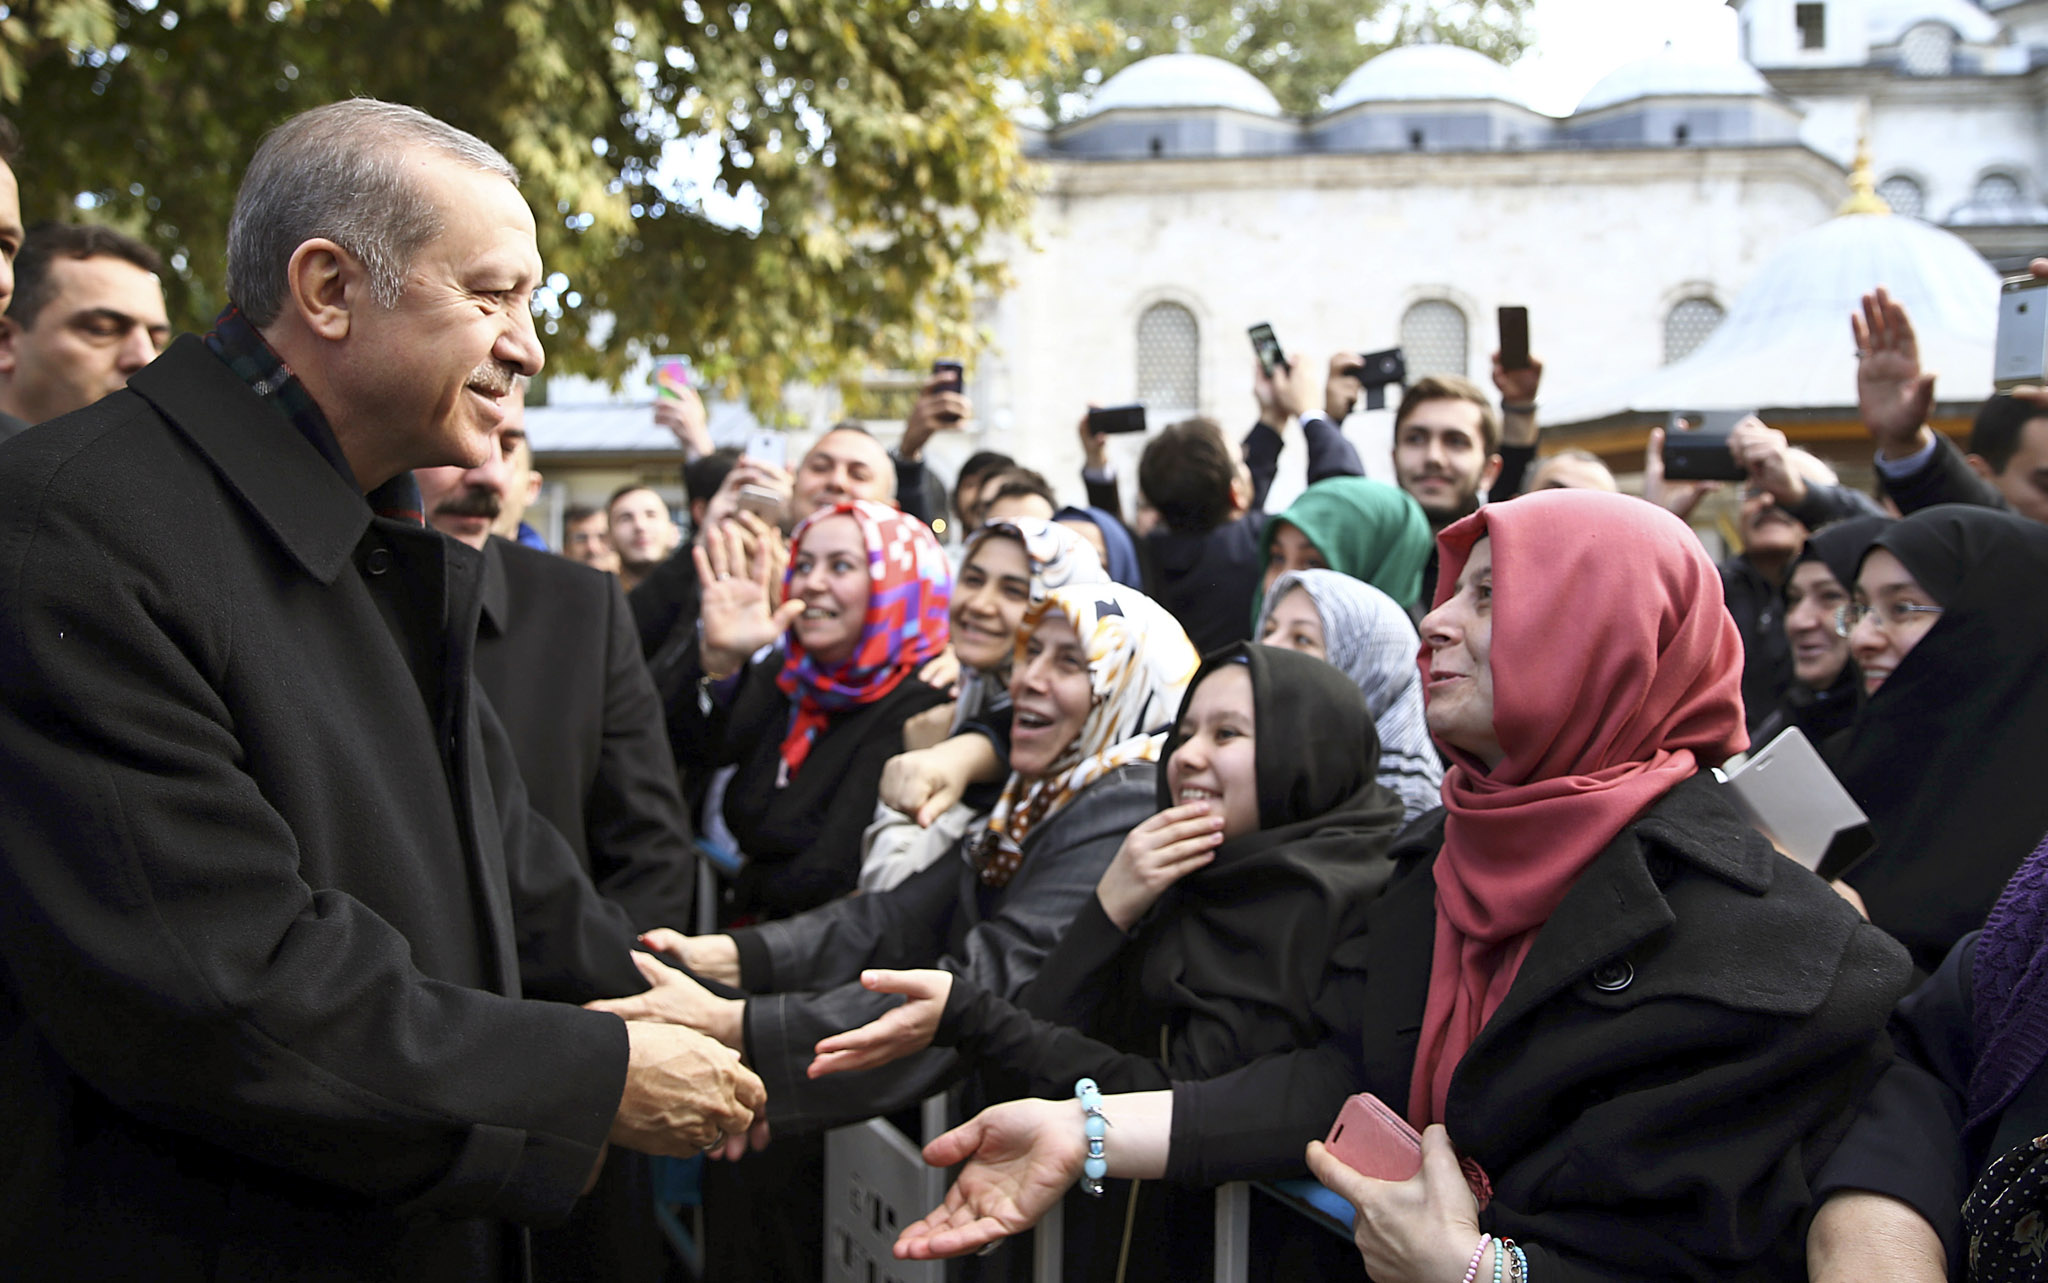 Recep Tayyip Erdogan...Turkey's President Recep Tayyip Erdogan, left, speaks to supporters after morning prayers at Eyup Sultan Mosque in Istanbul, Turkey, Monday, Nov. 2, 2015. Erdgoan hailed a big victory for his ruling party in parliamentary elections and called on the world to respect it. The ruling Justice and Development party, or AKP, won more than 49 percent of the vote in the snap election, almost double that of the next party in Sundayís vote. The win restored the single-party majority that it had lost in June elections. (Presidential Press Service/Pool Photo via AP)